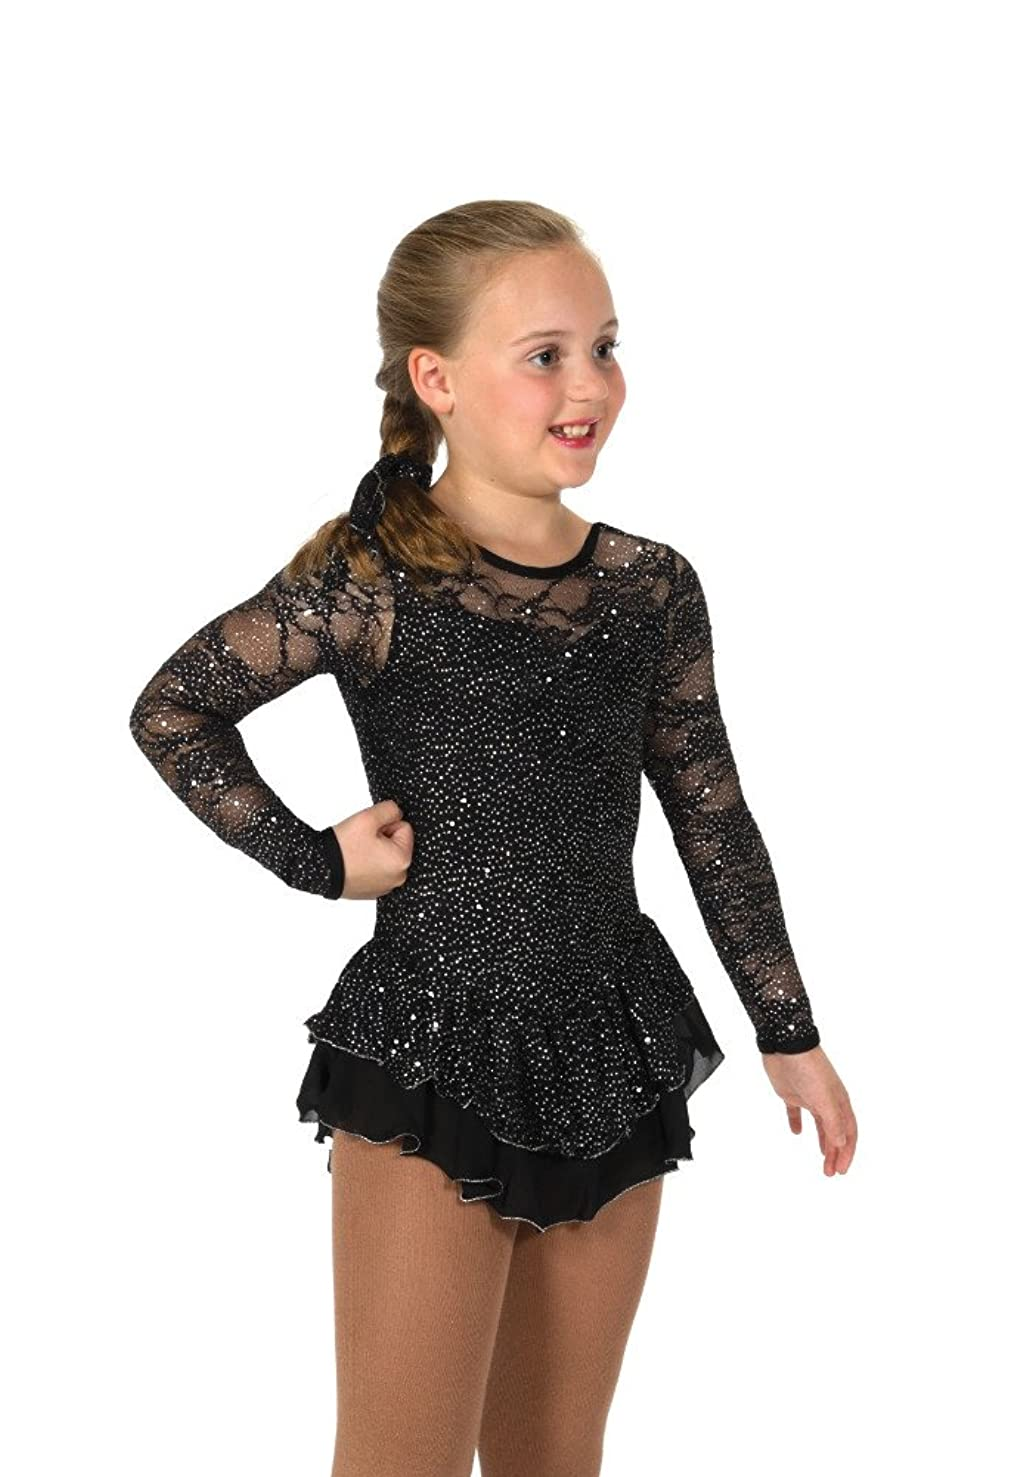 Jerry's Ice Skating Dress - 193 Love & Lace Dress